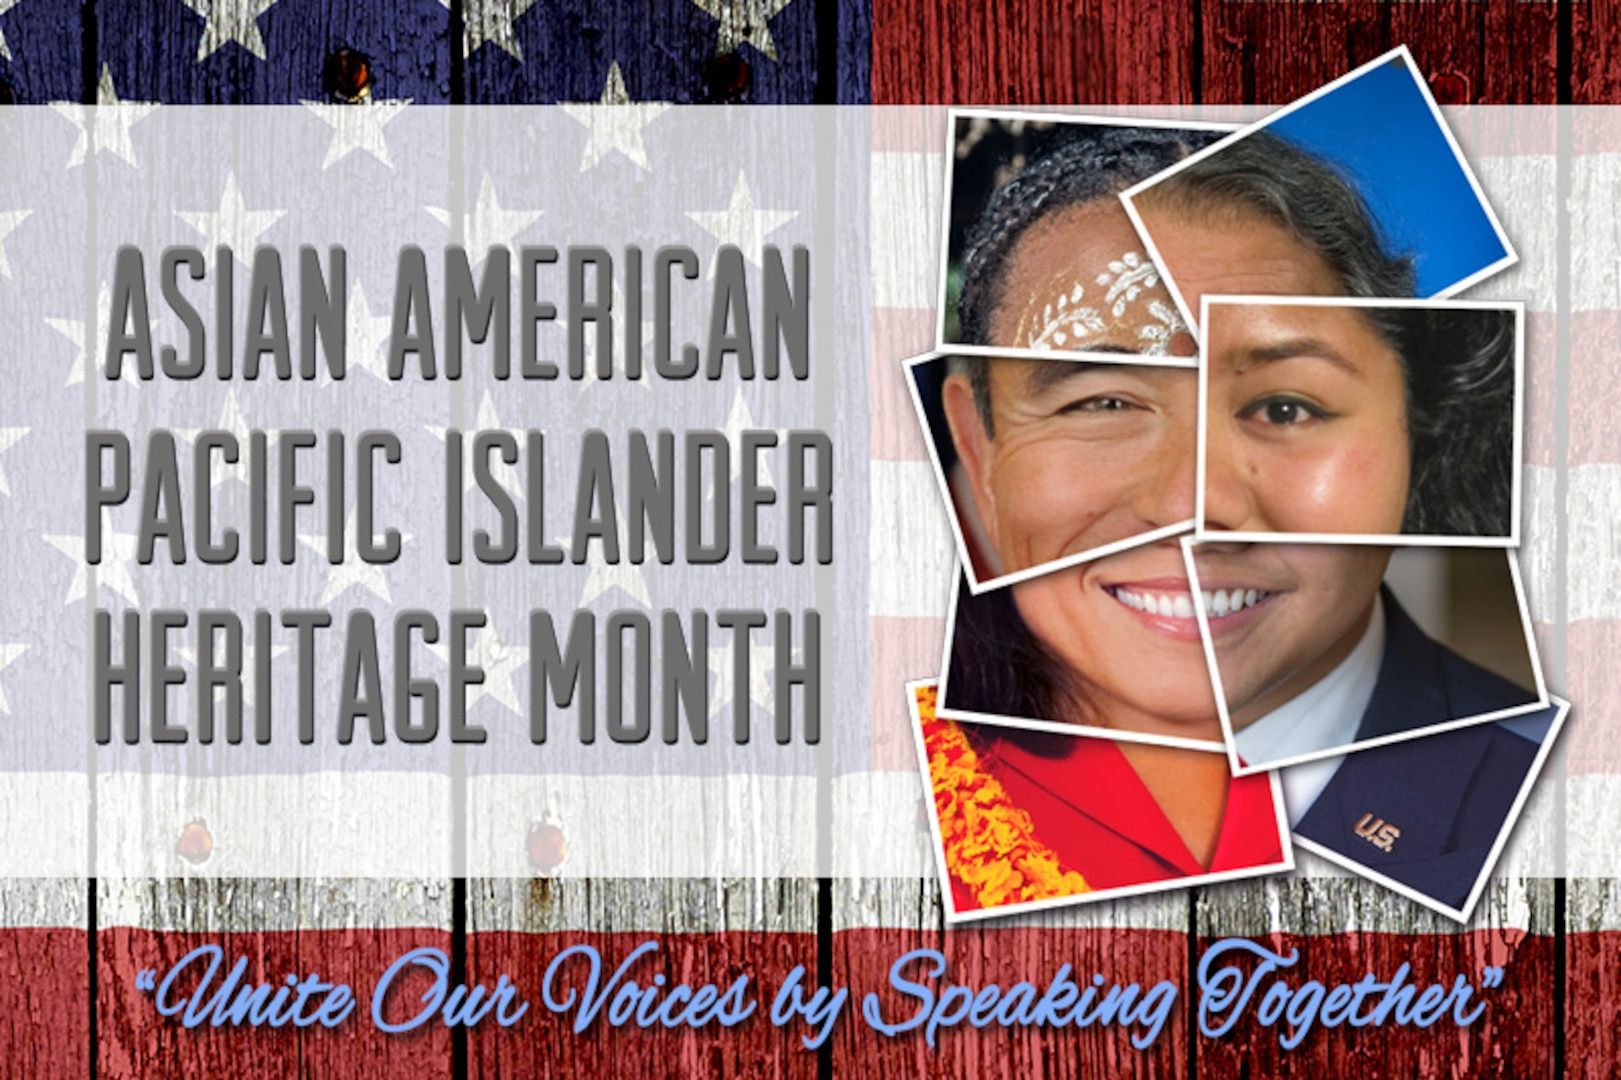 collage of images making the shape if an Asian American face.